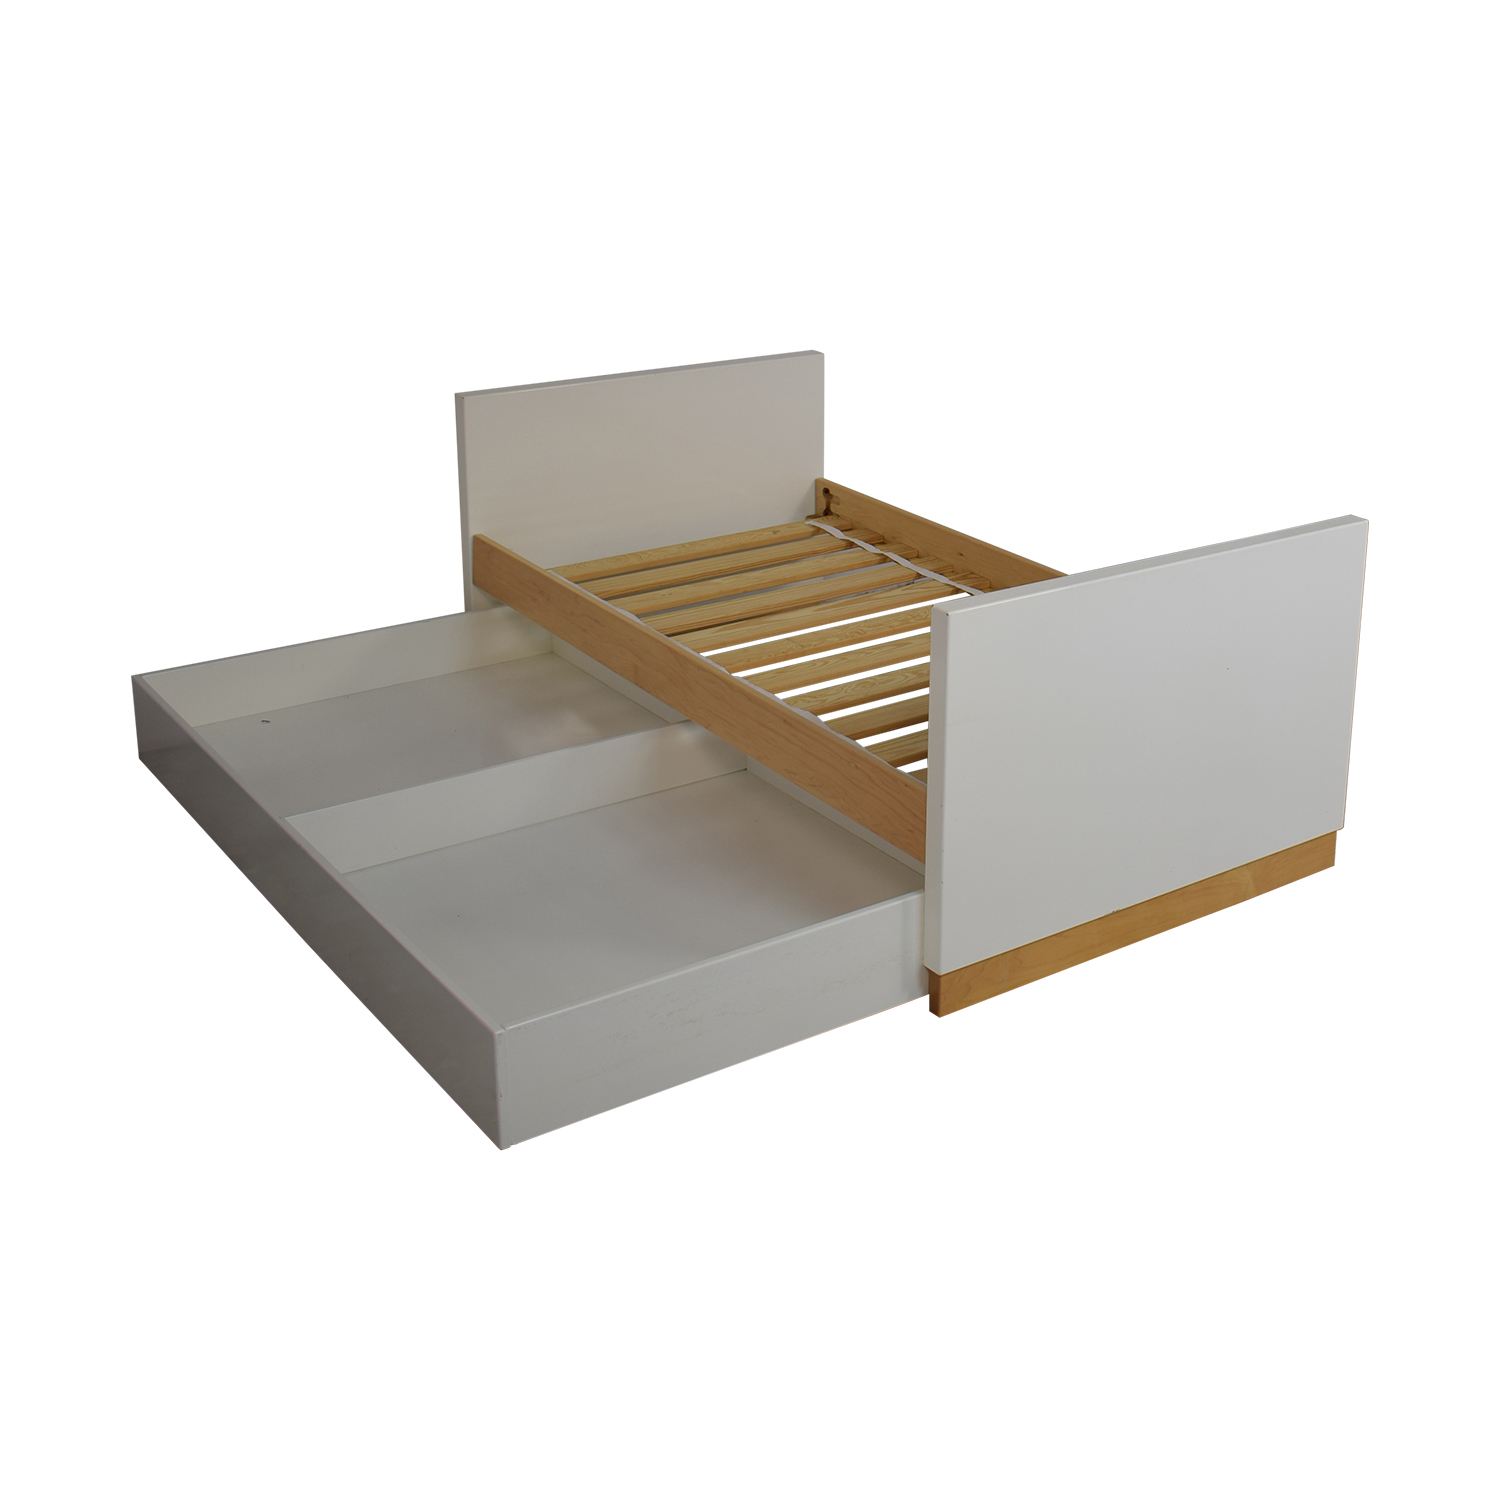 Room & Board Room & Board Moda White and Maple Twin Bed Beds